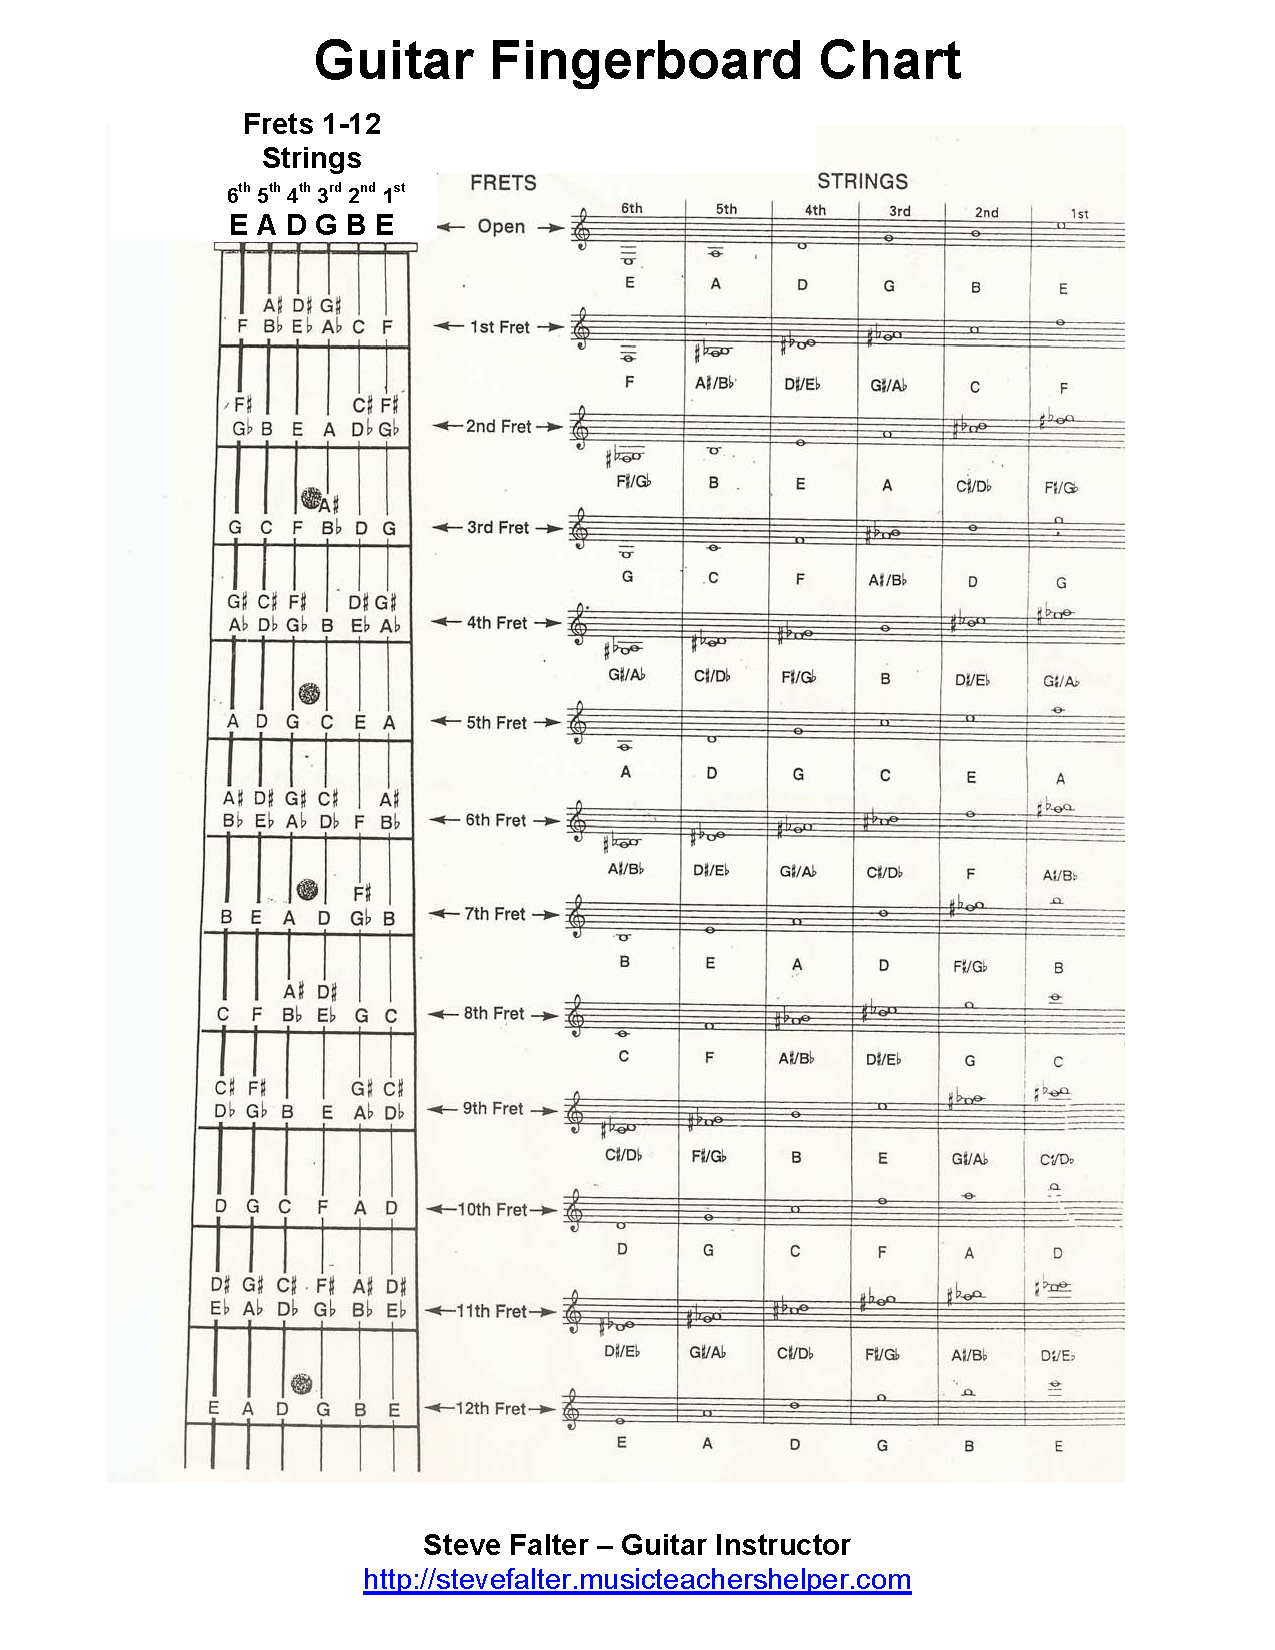 Old Fashioned image with regard to printable guitar fretboard chart